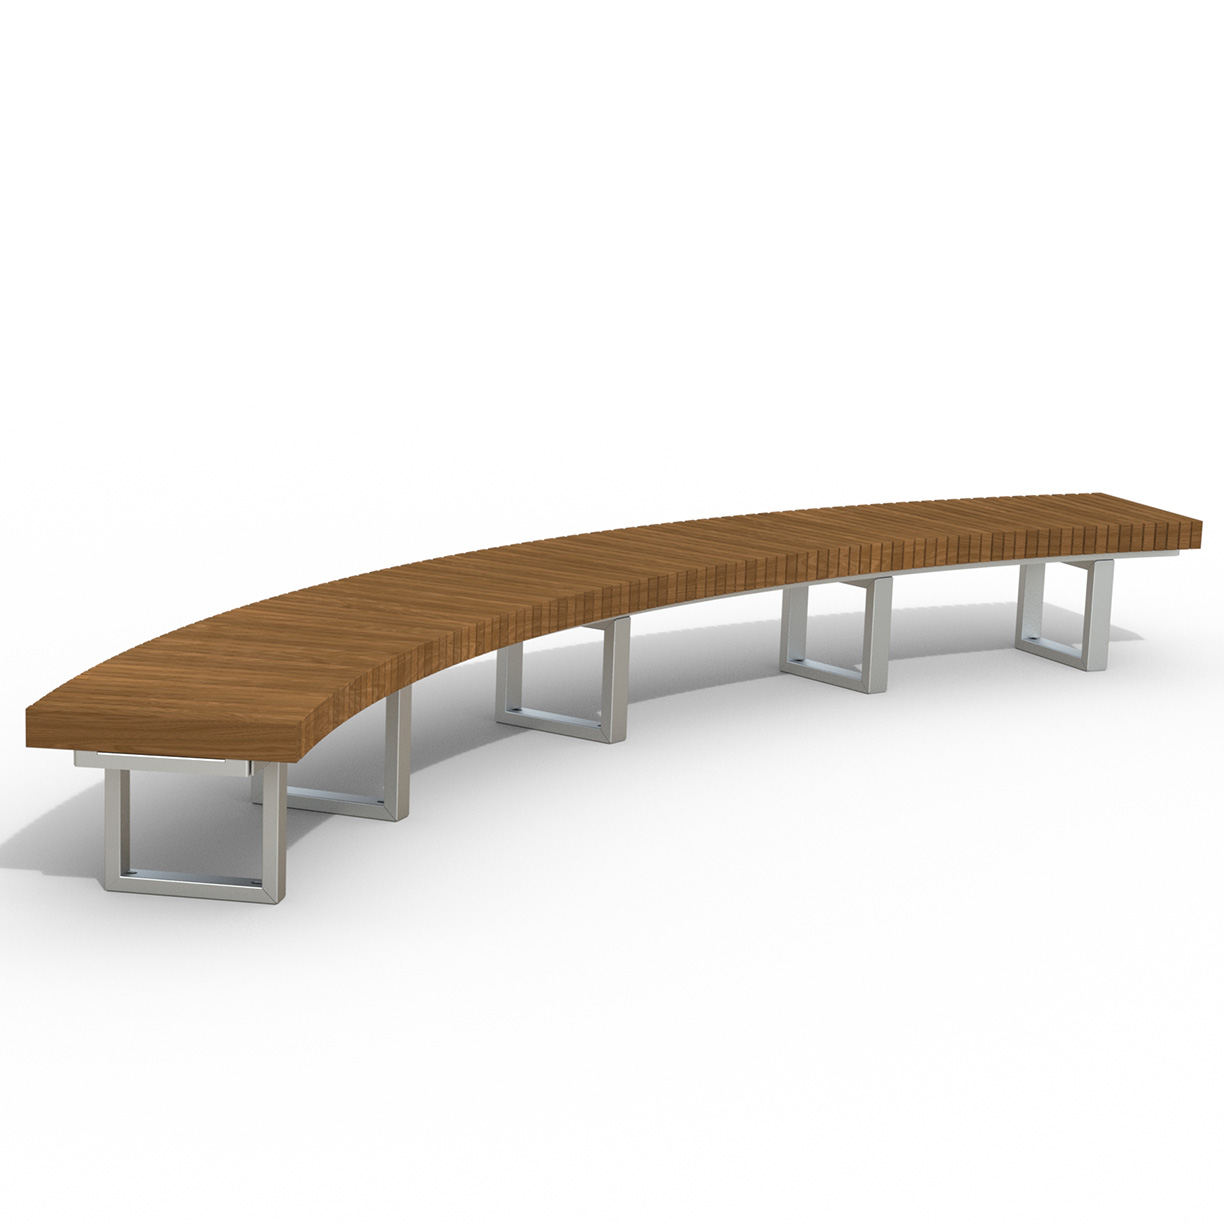 INF24C1660T  Infinity Collection 16' Radius / 60 Degree Curved Thermory Slat Bench